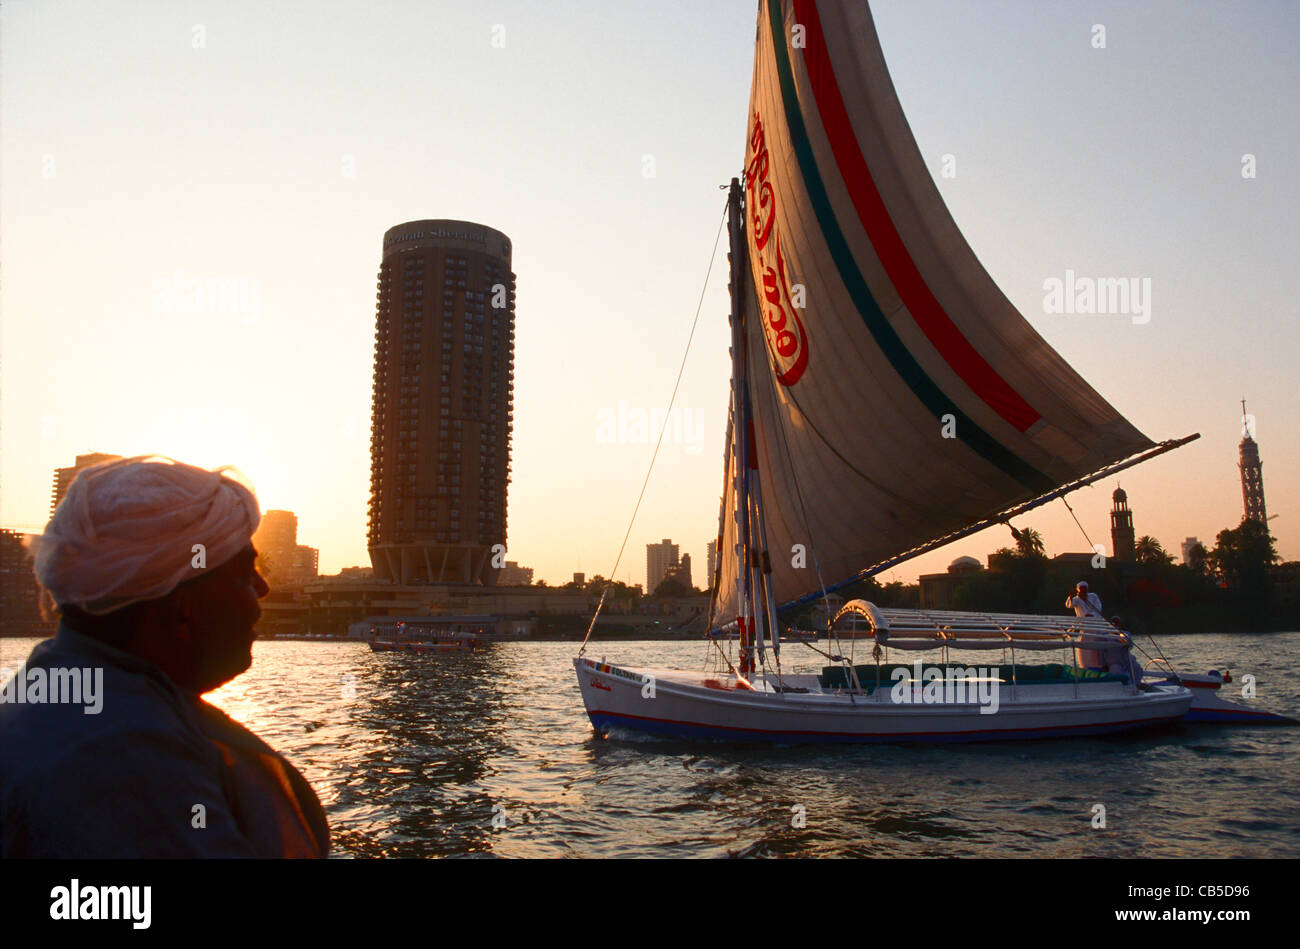 A small Nile river saling ferry carries a Coca-Cola logo on its sail, Cairo, Eygpt. - Stock Image